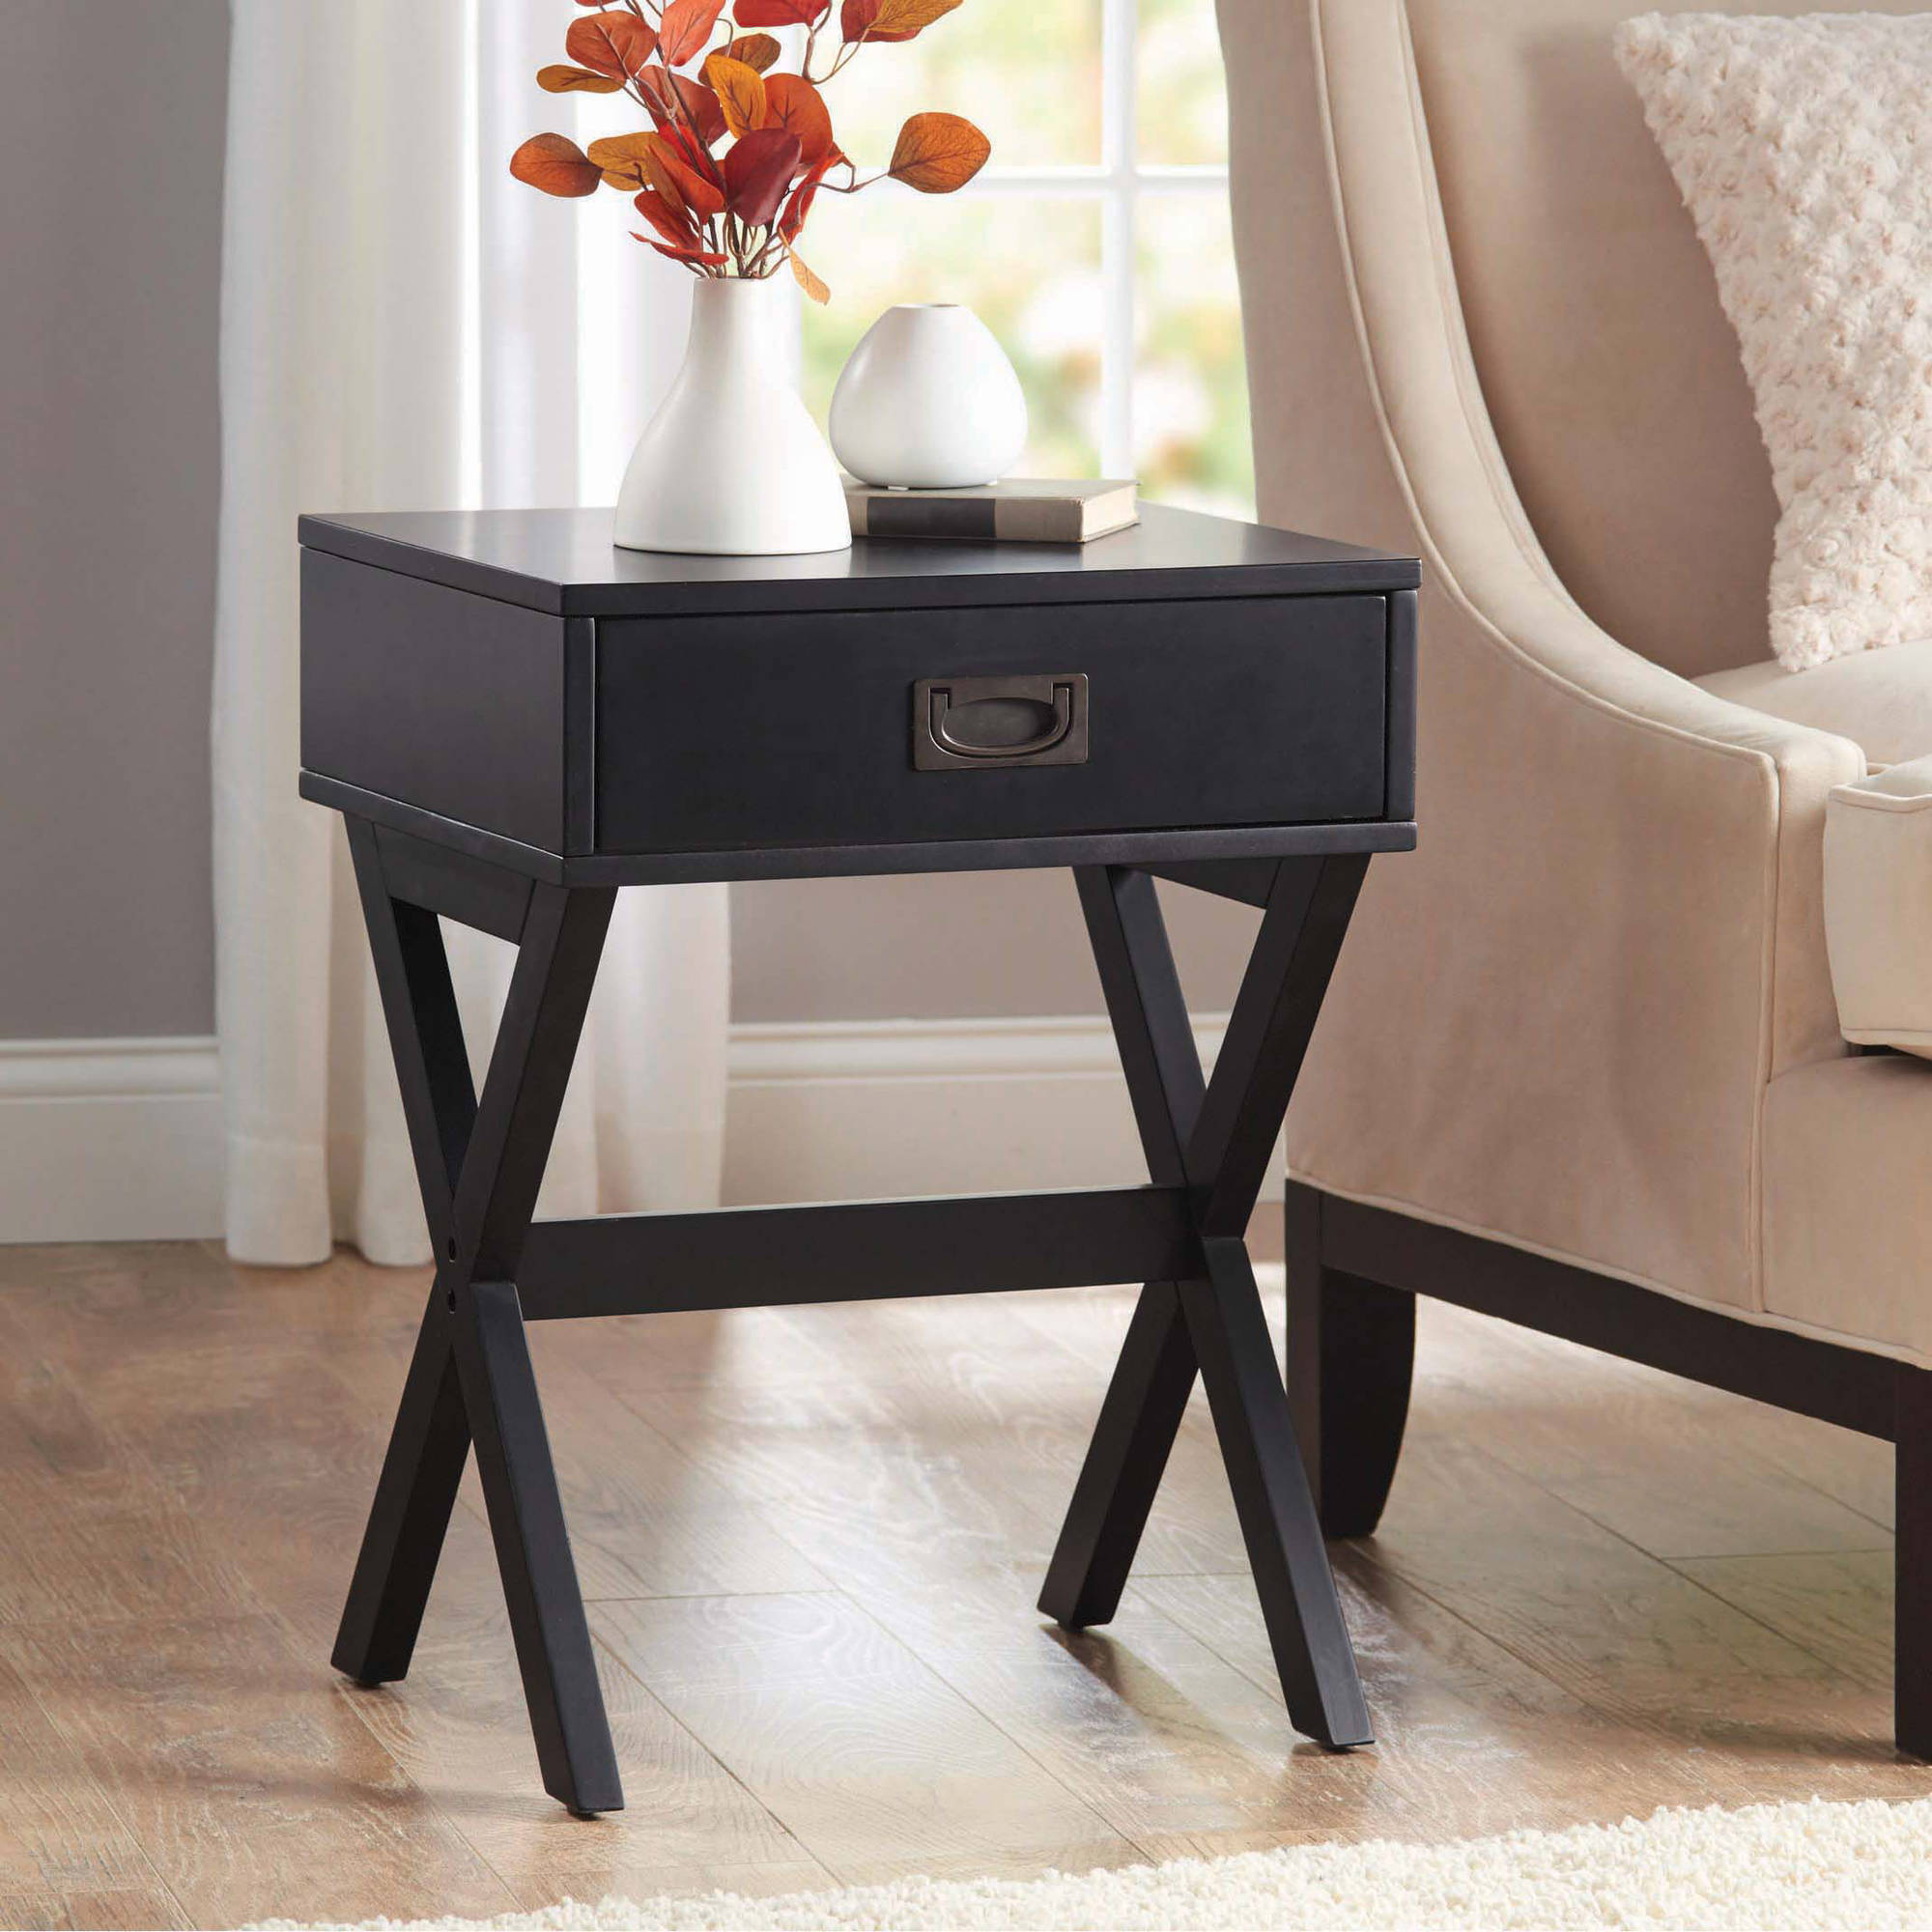 black accent table with drawer home design ideas winsome timmy better homes gardens leg multiple mini tables battery operated desk lamp brass end glass top kmart dining chairs